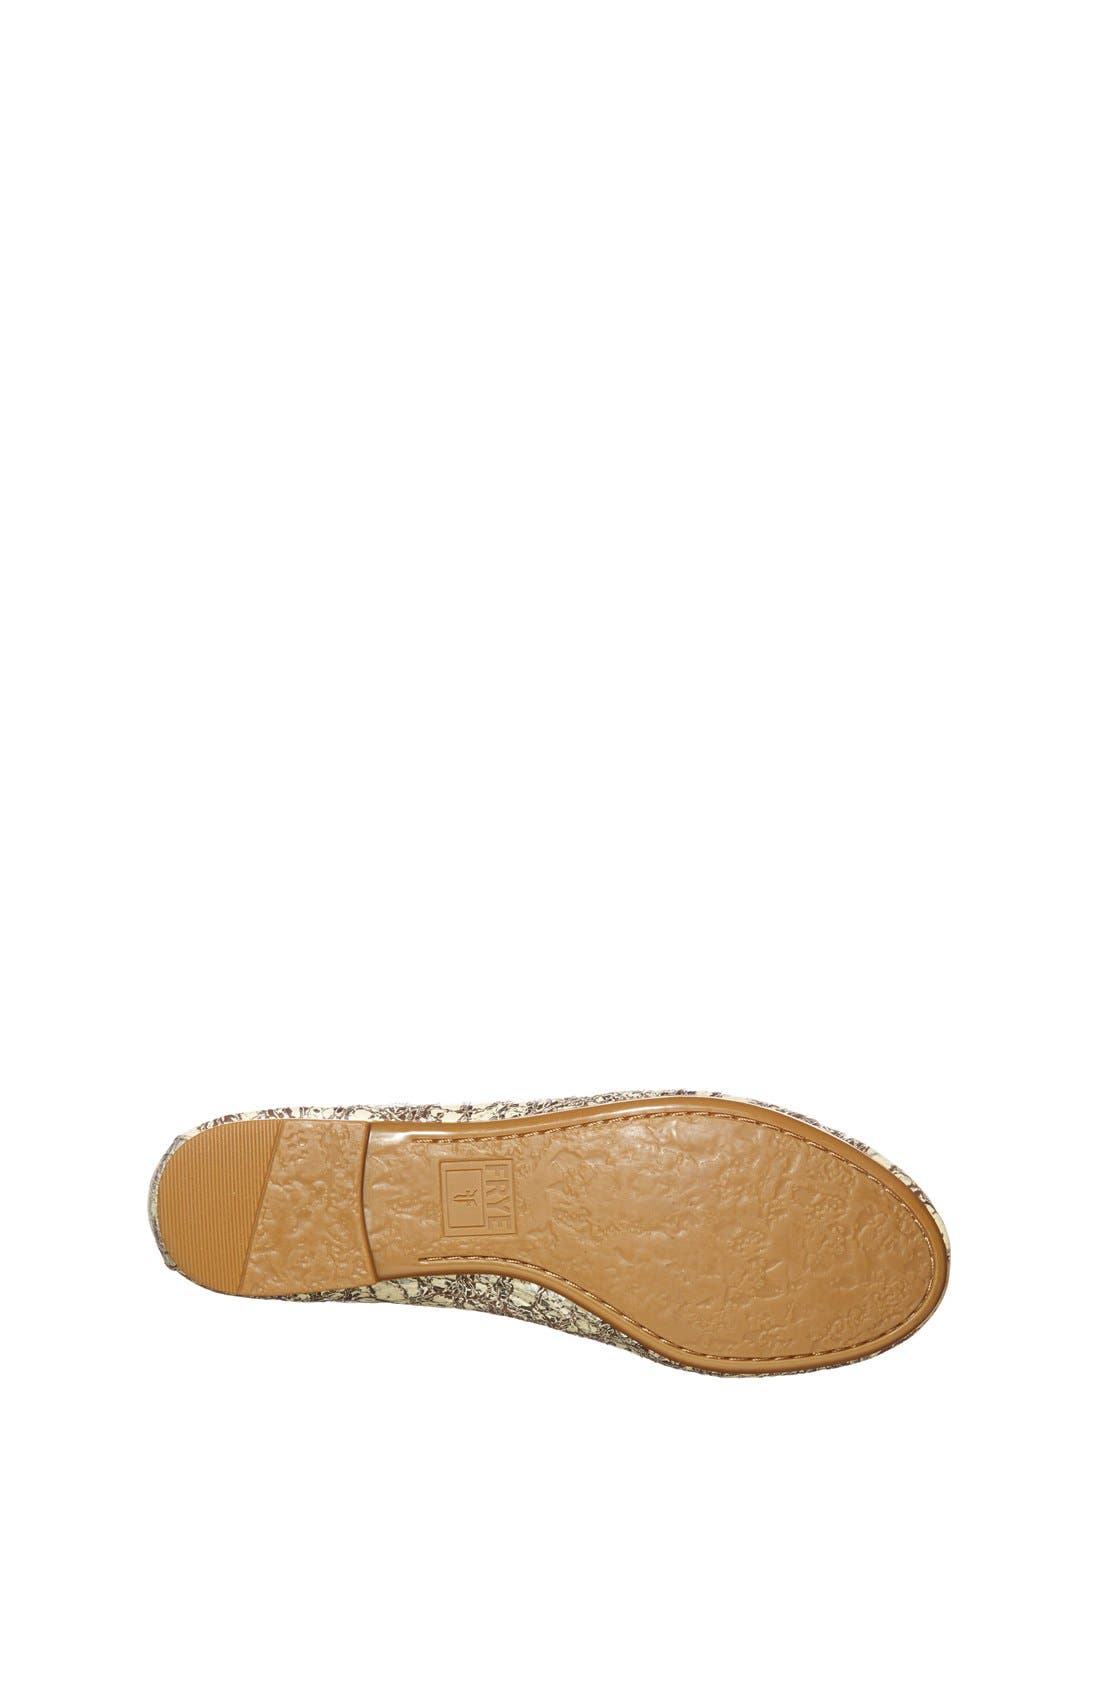 Alternate Image 4  - Frye 'Carson' Ballet Flat (Toddler, Little Kid & Big Kid)